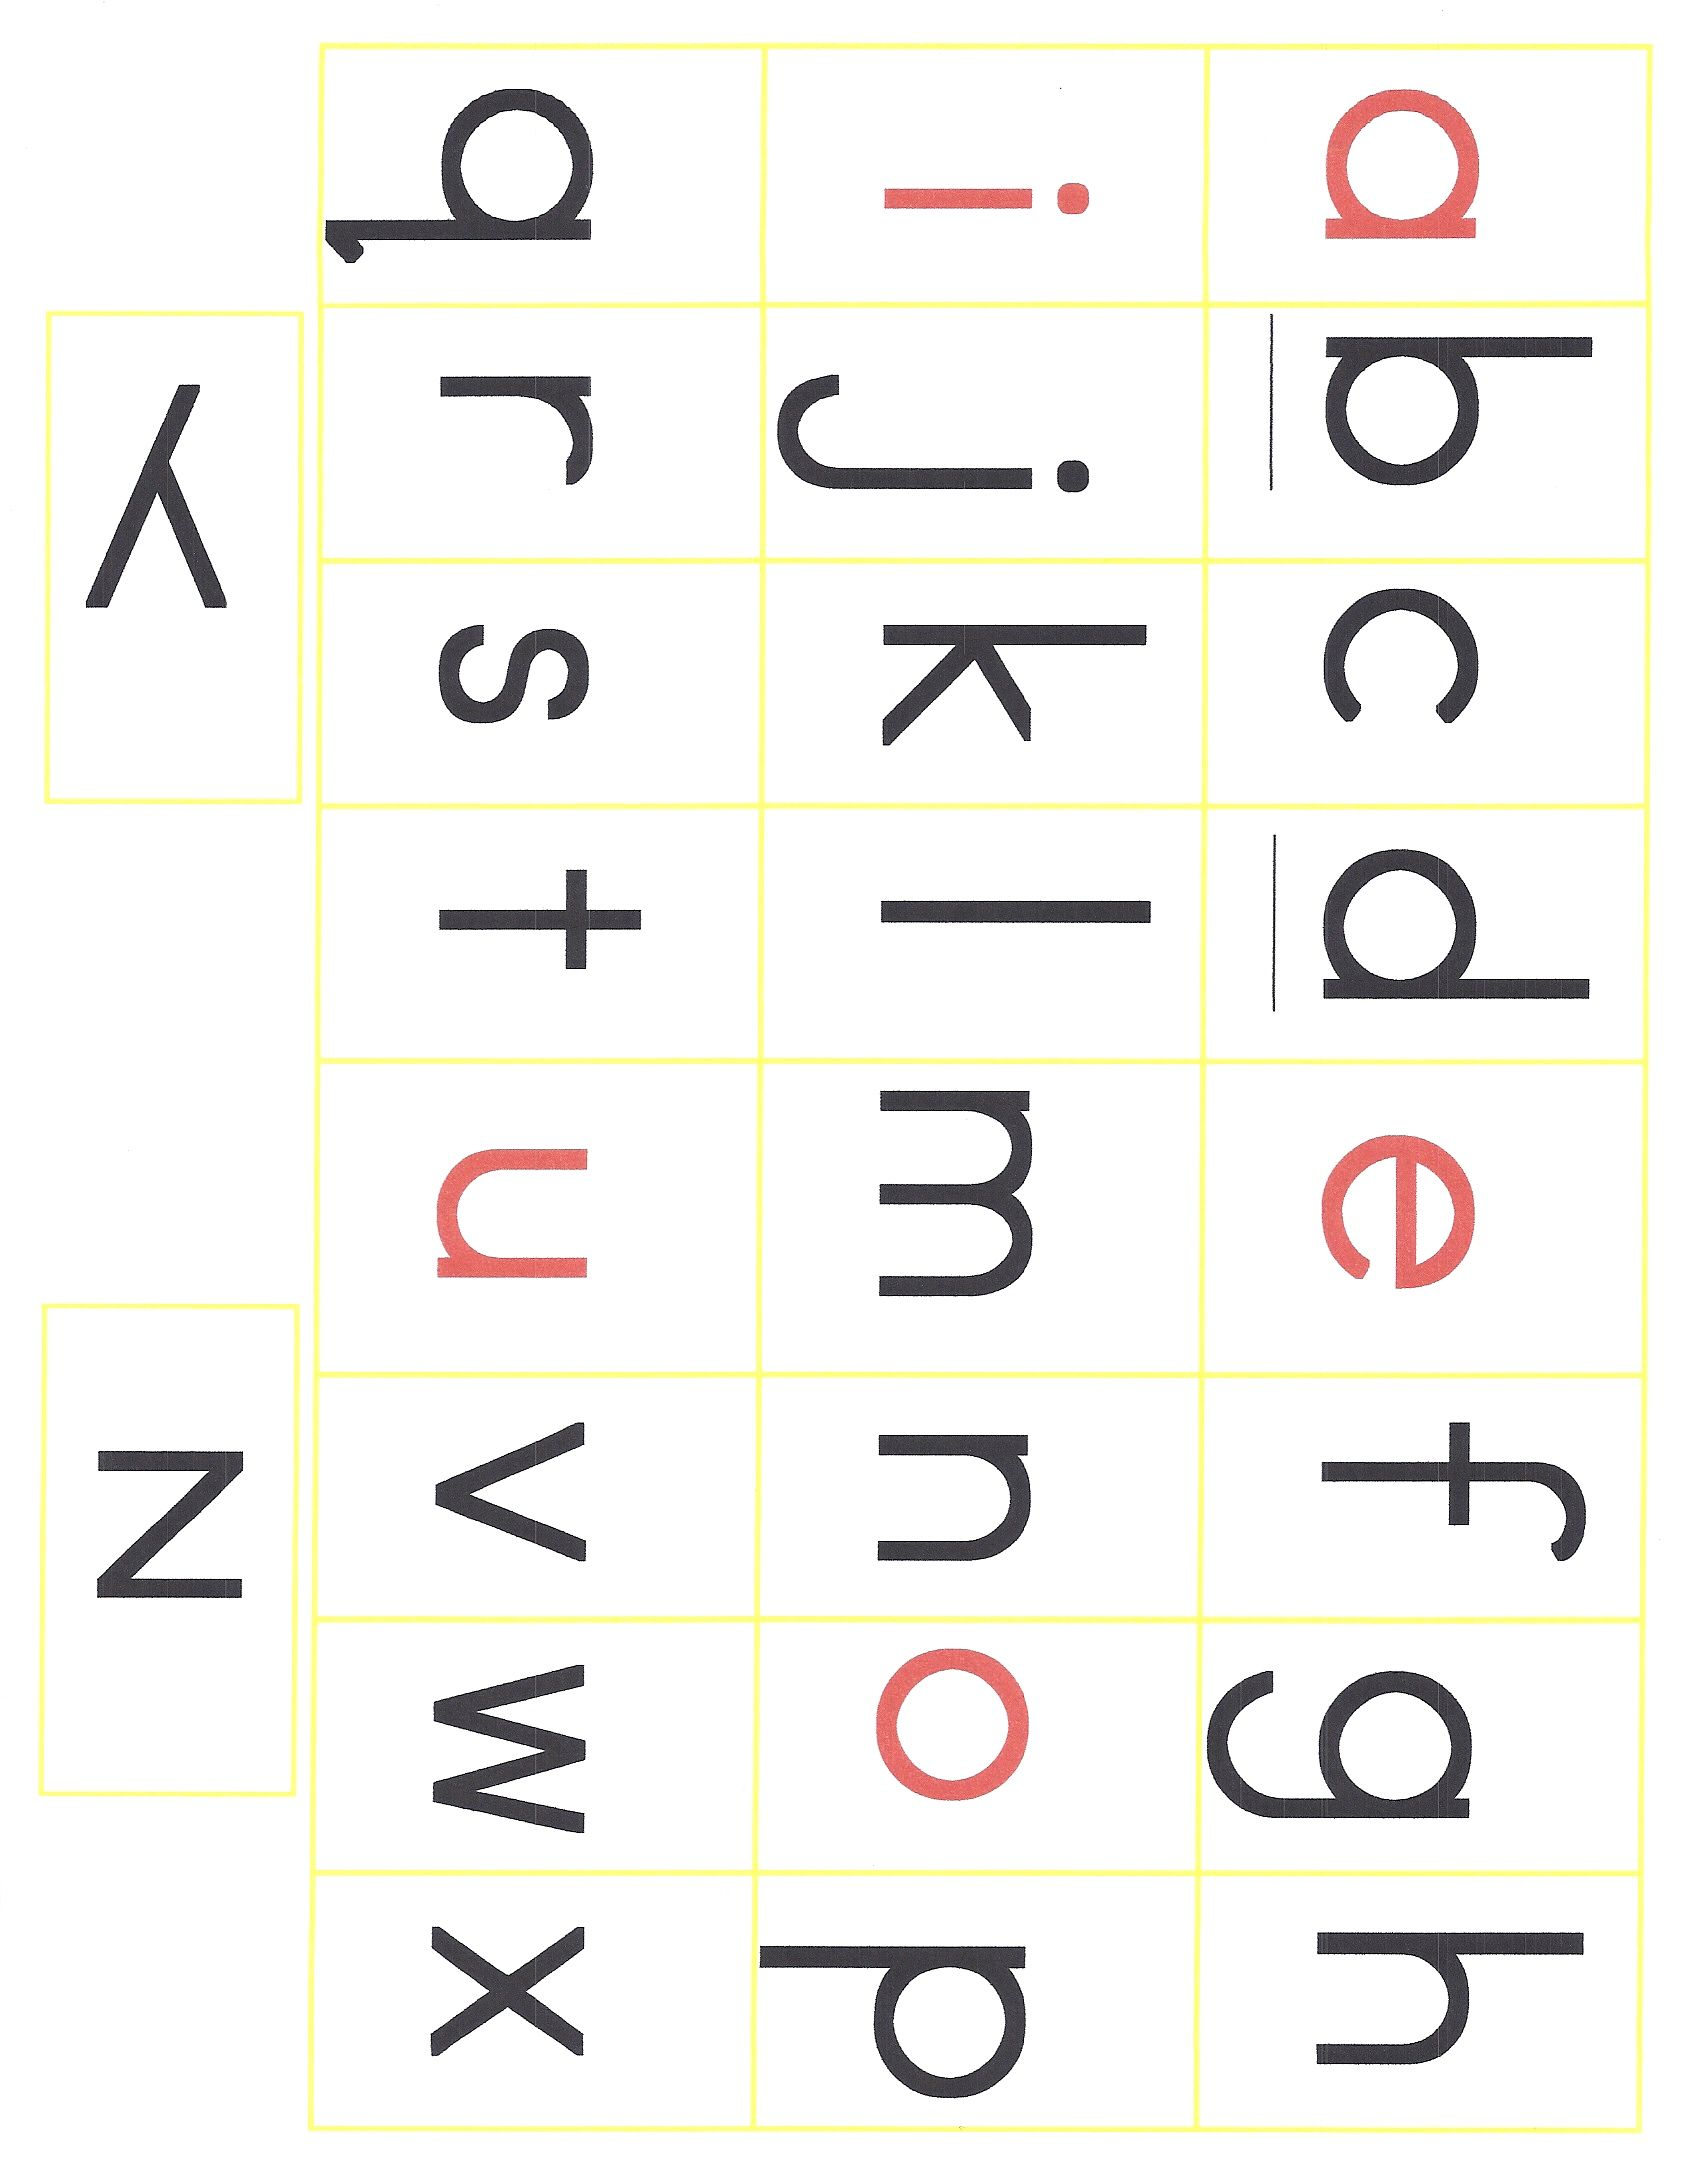 Alphabet Print Out Printable Cut Out Laminate And Make Words